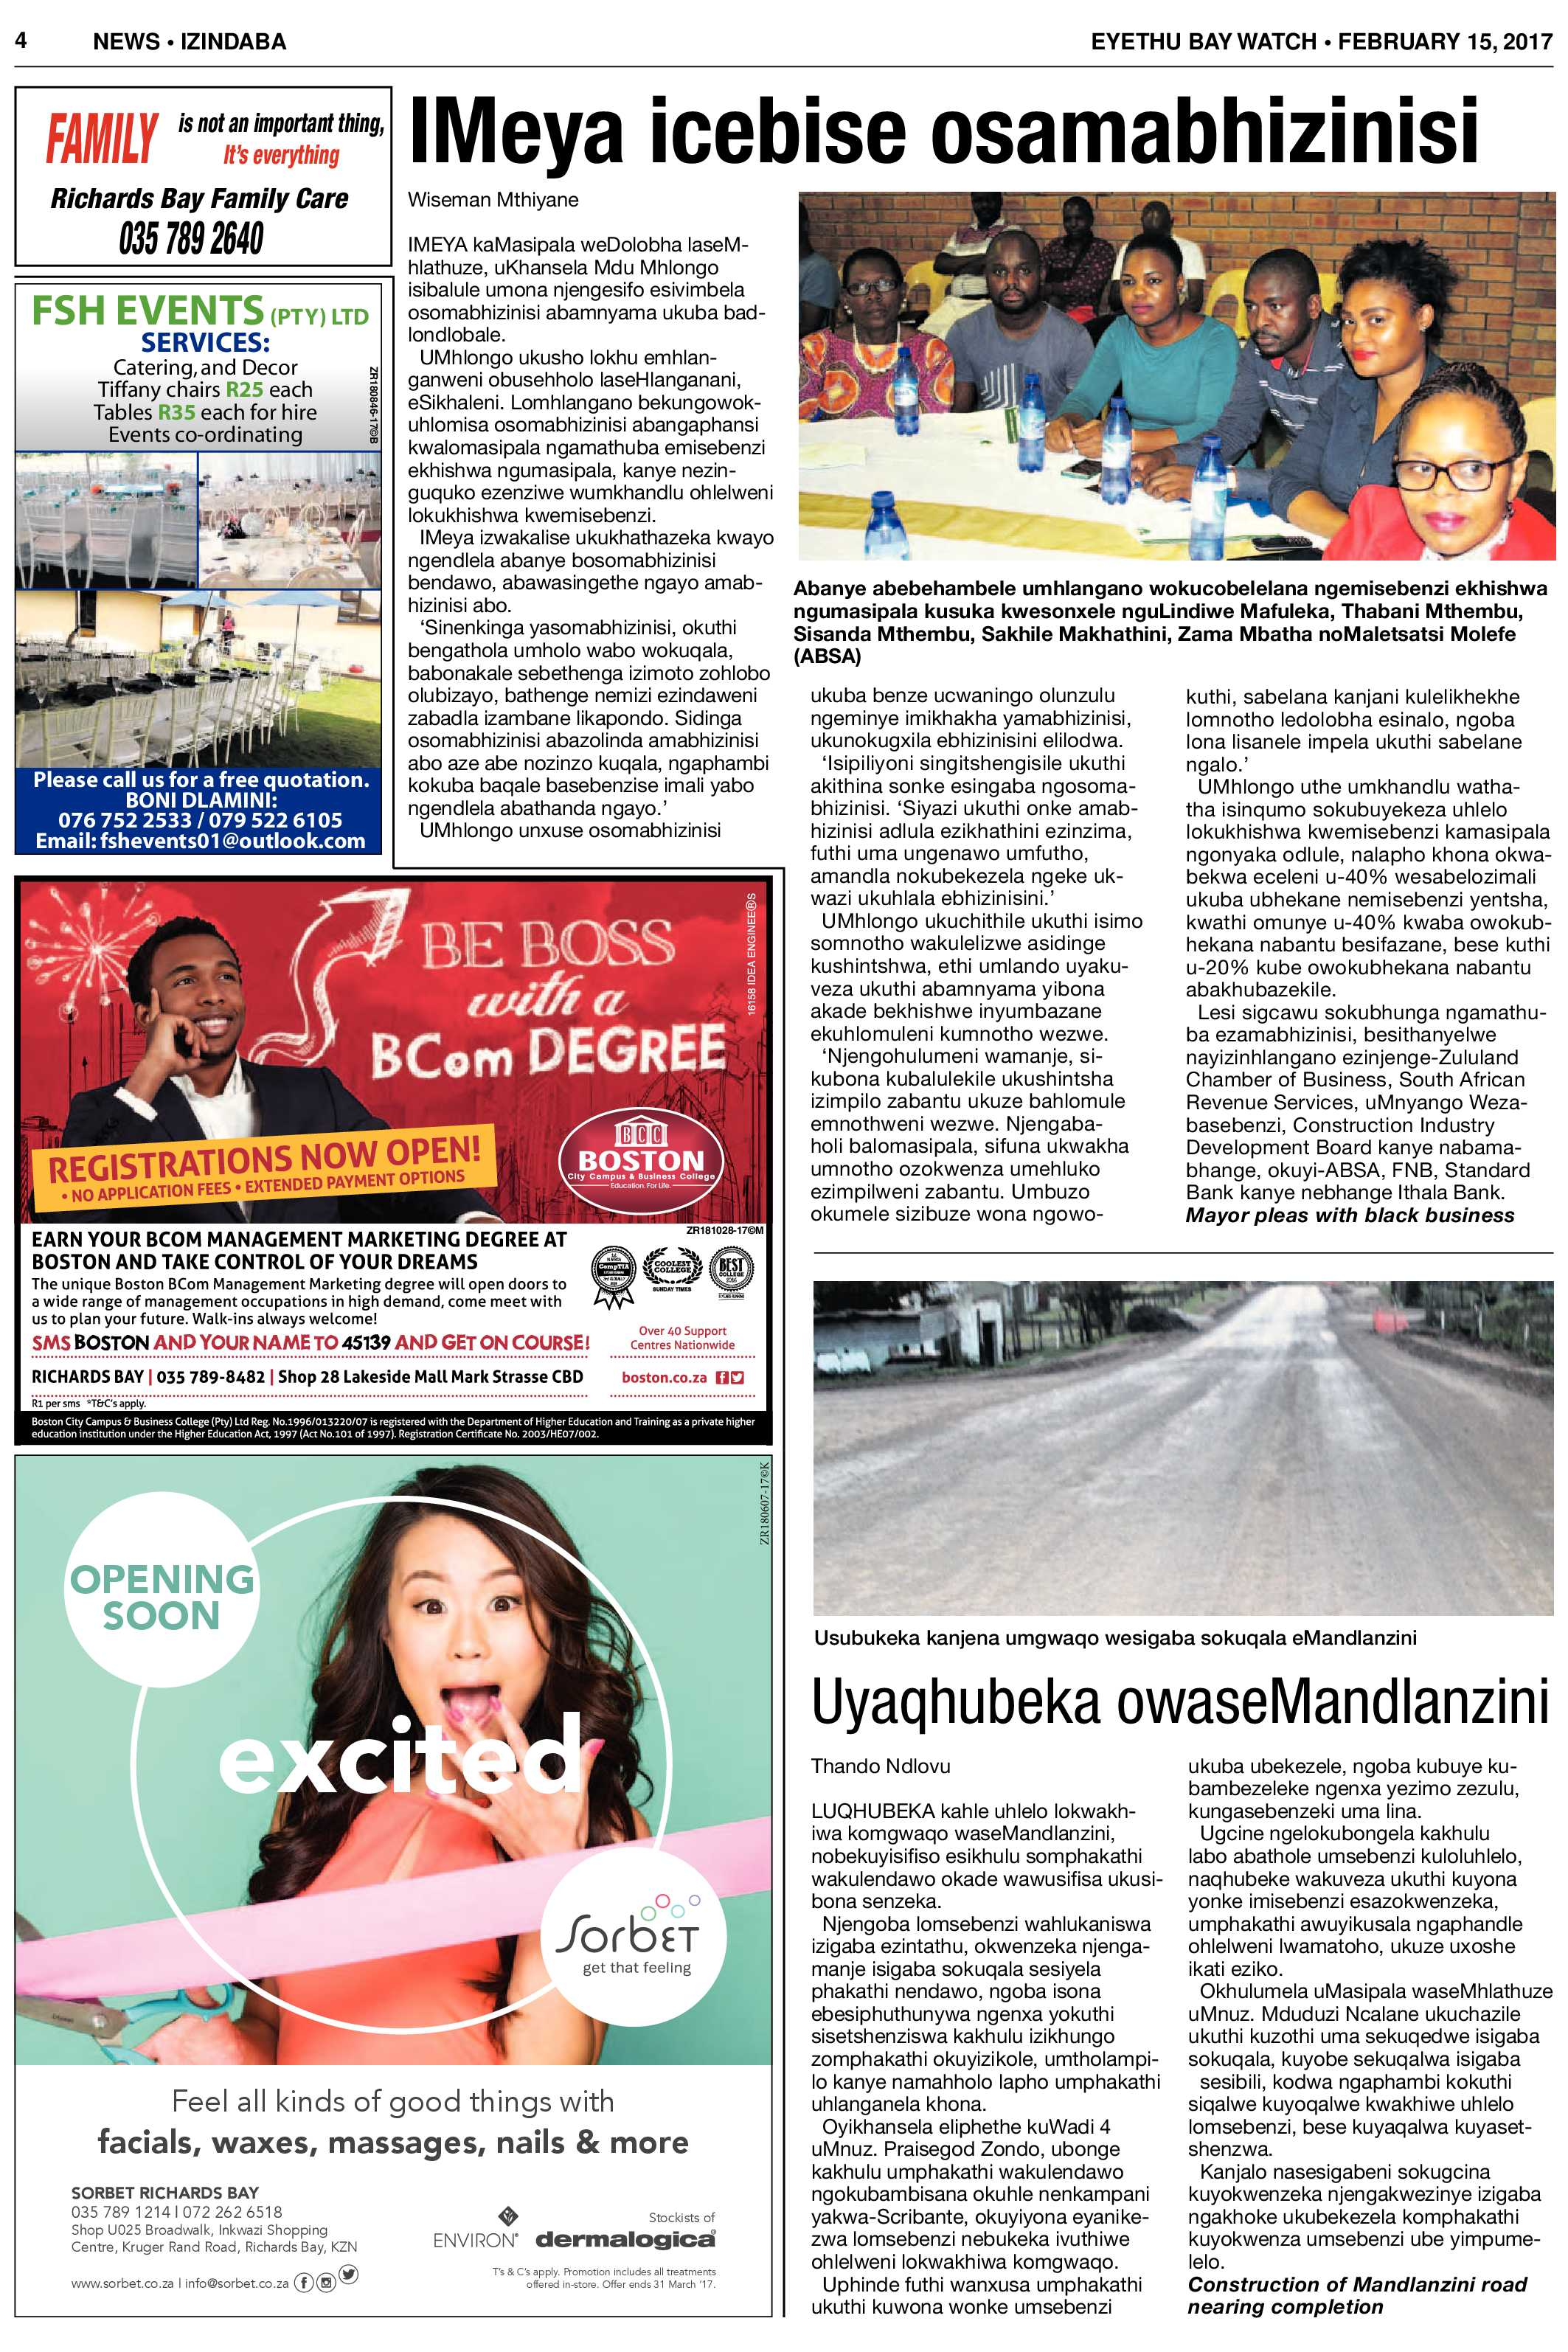 eyethu-baywatch-15-february-epapers-page-4